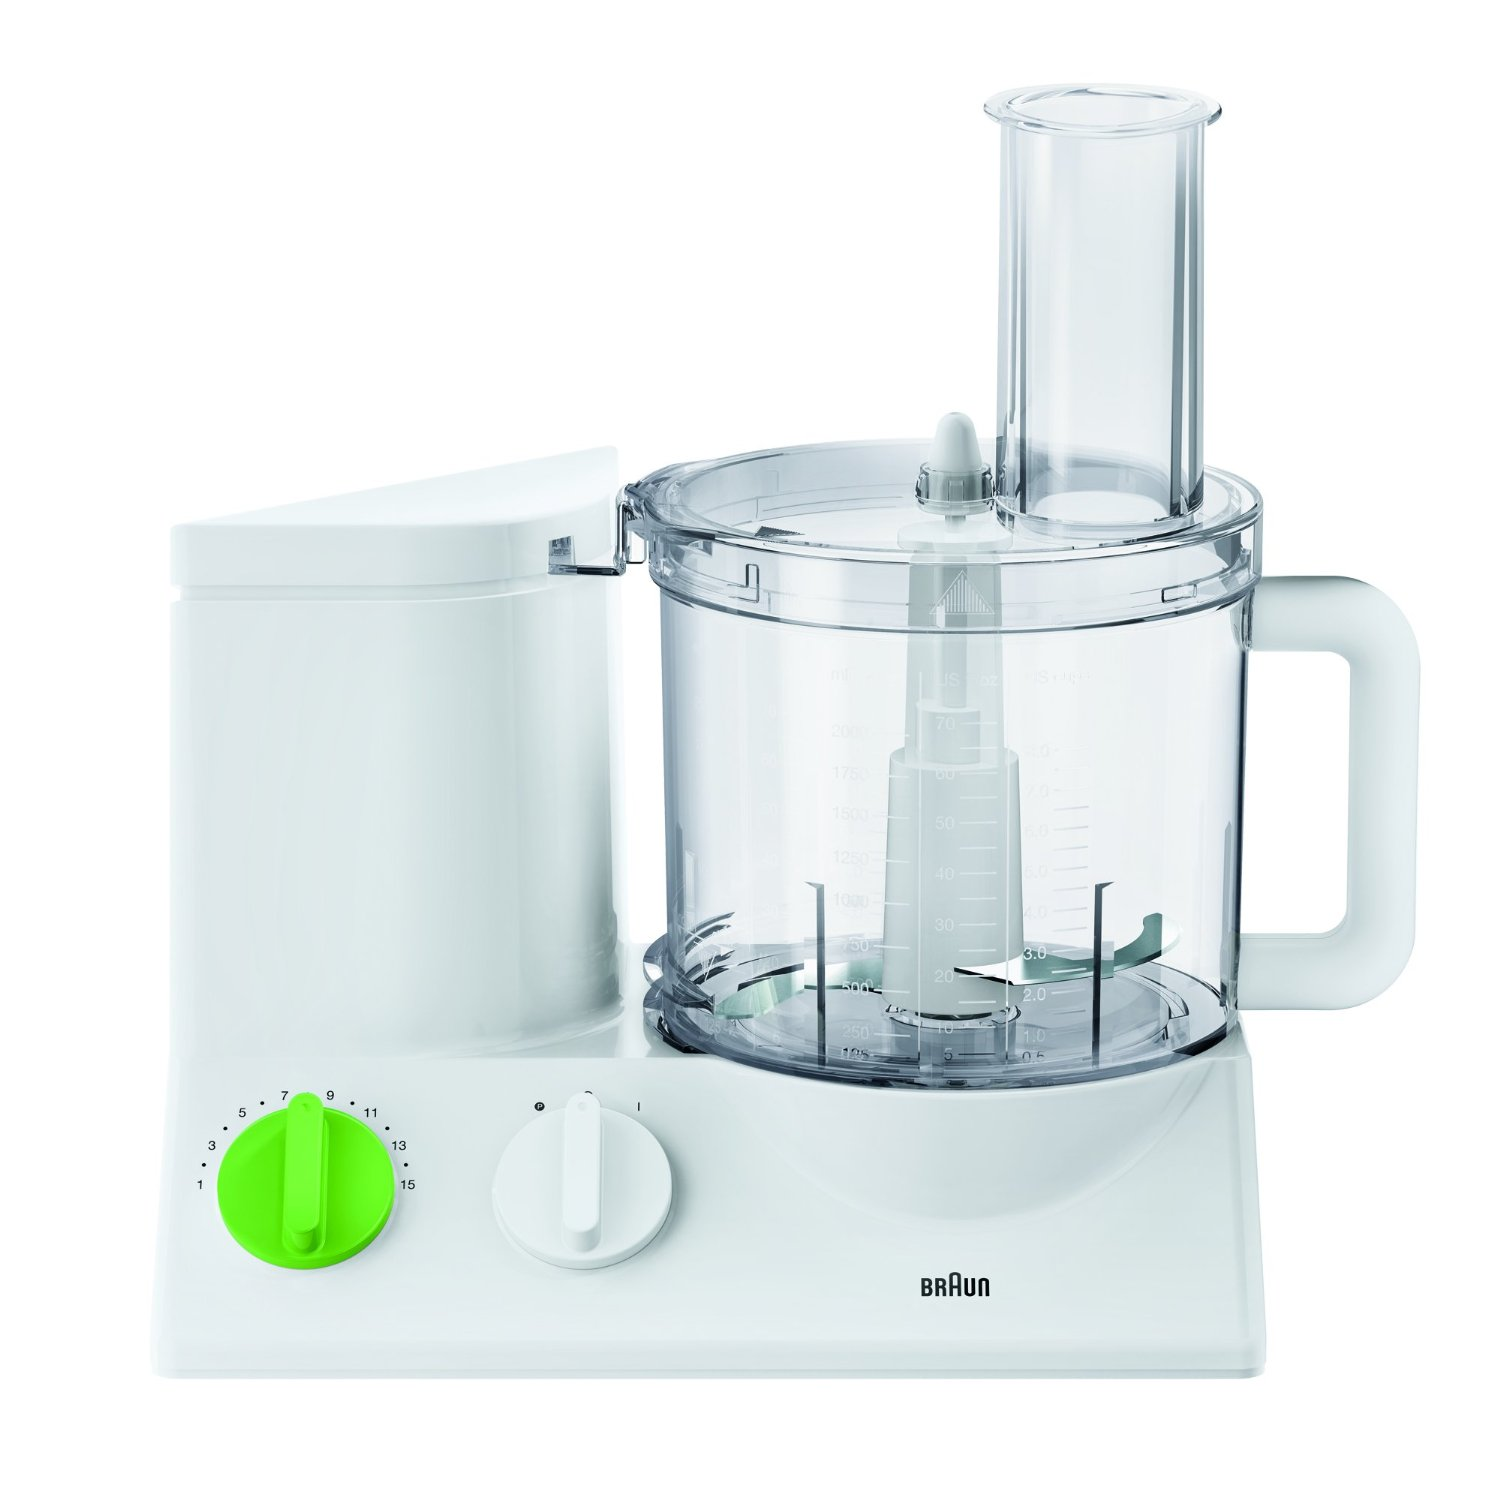 Braun Food processor FP 3010 800W white - Tribute Collection Virtuves kombains